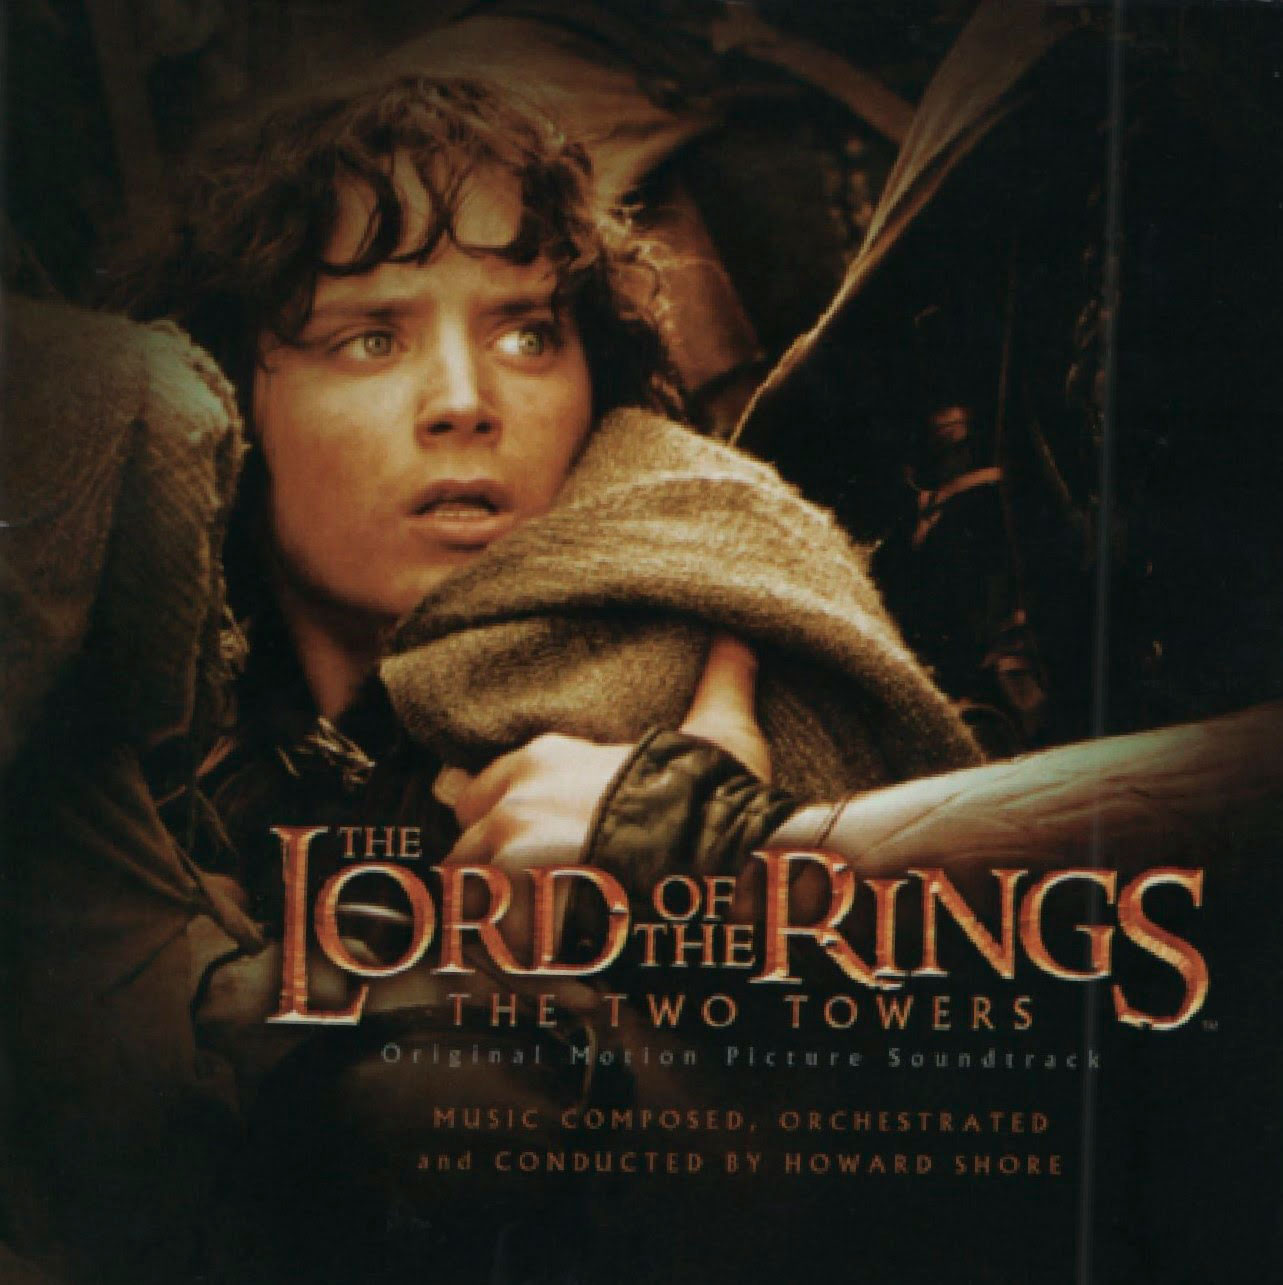 the lord of the rings cd cover